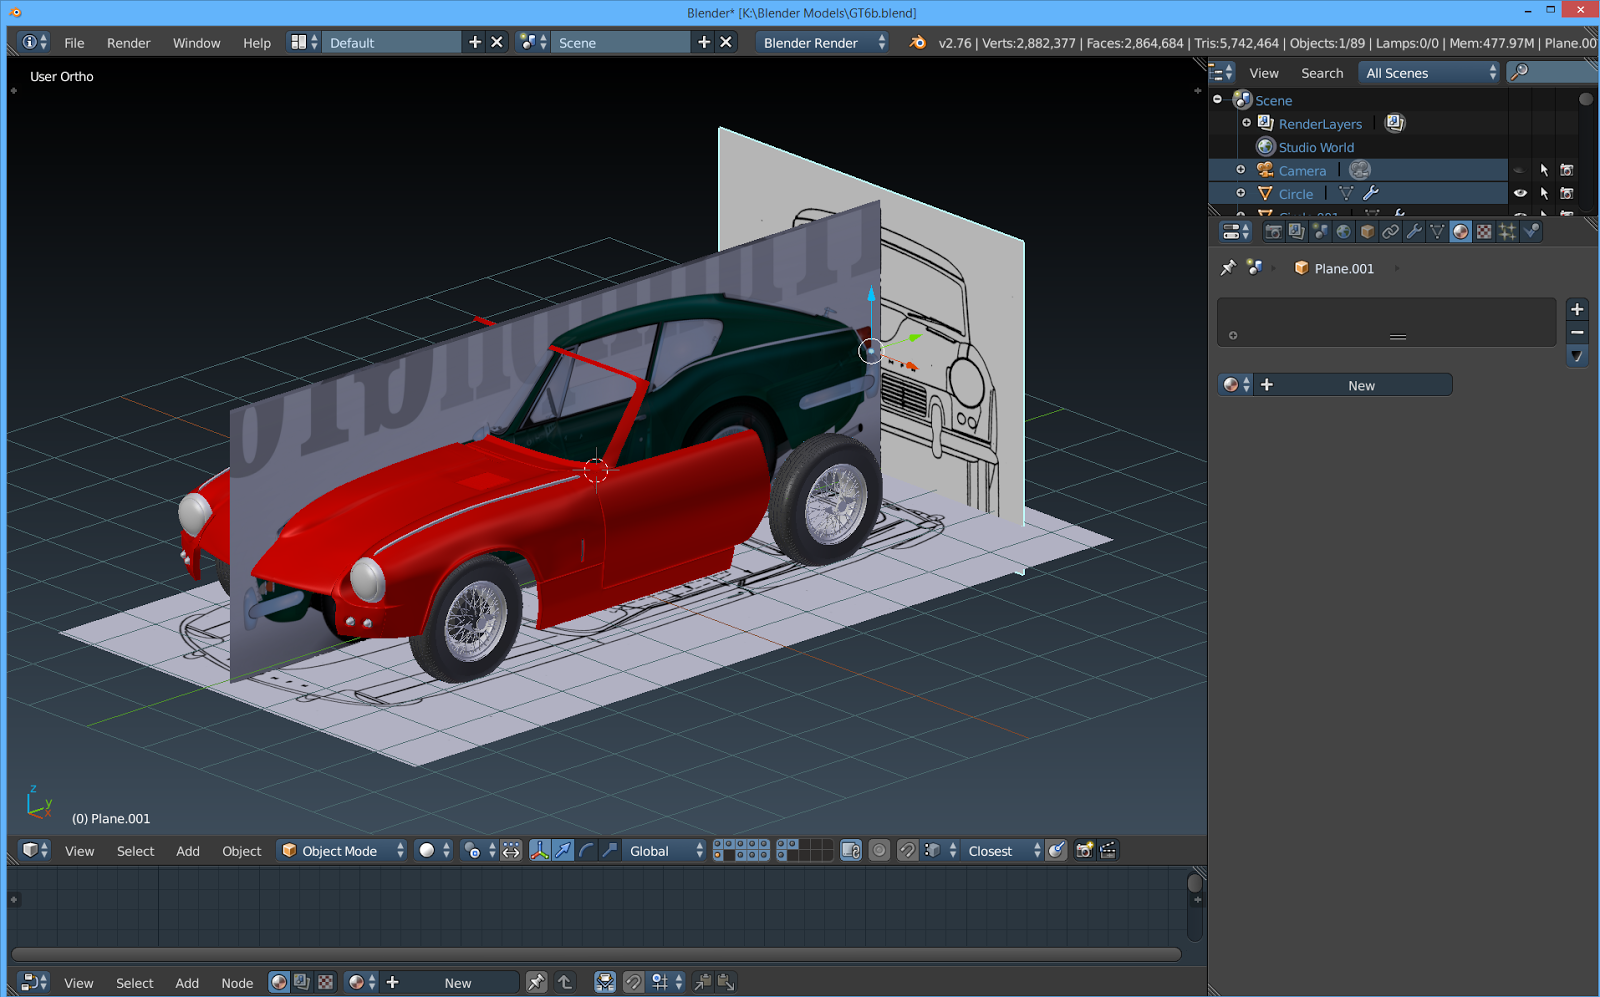 The tinkers workshop blender triumph gt6 model progress like the other blender car models that ive worked on this one is not much different in its construction the blueprint layout of the sides front malvernweather Images